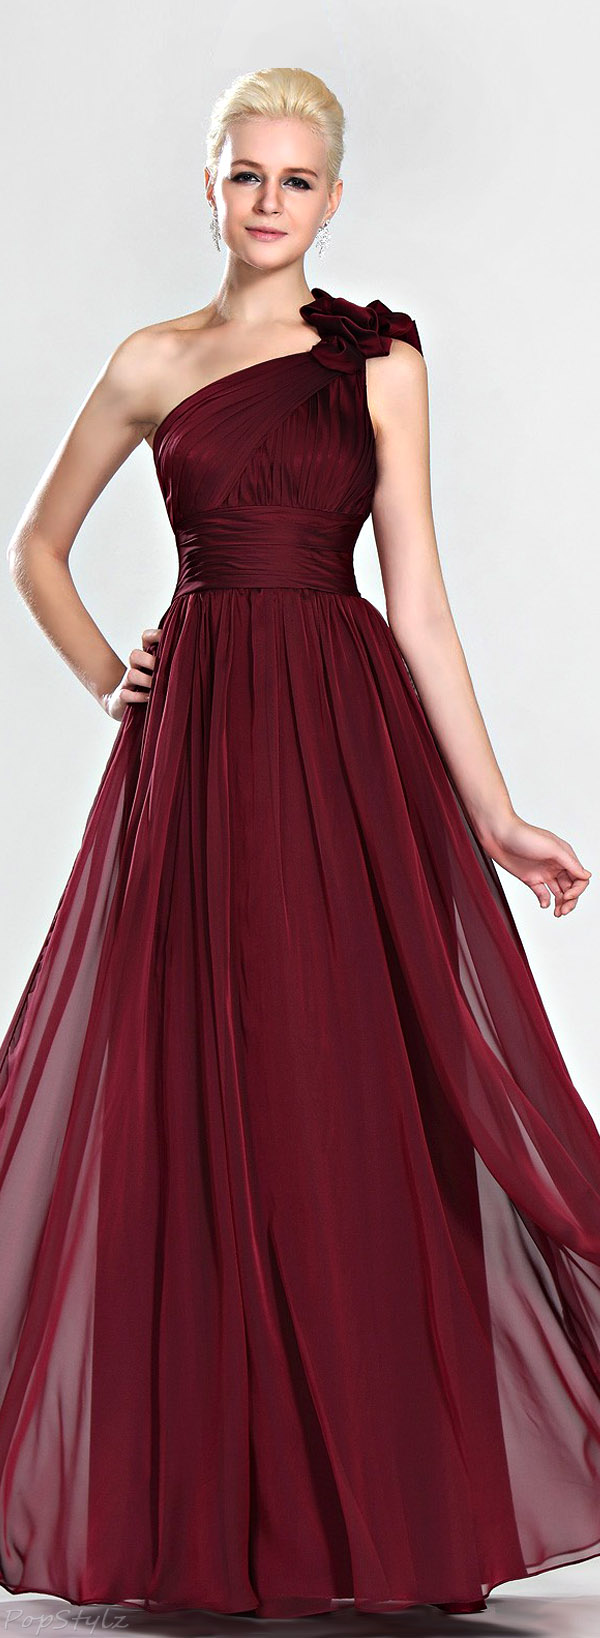 eDressit 00123617 Evening Gown